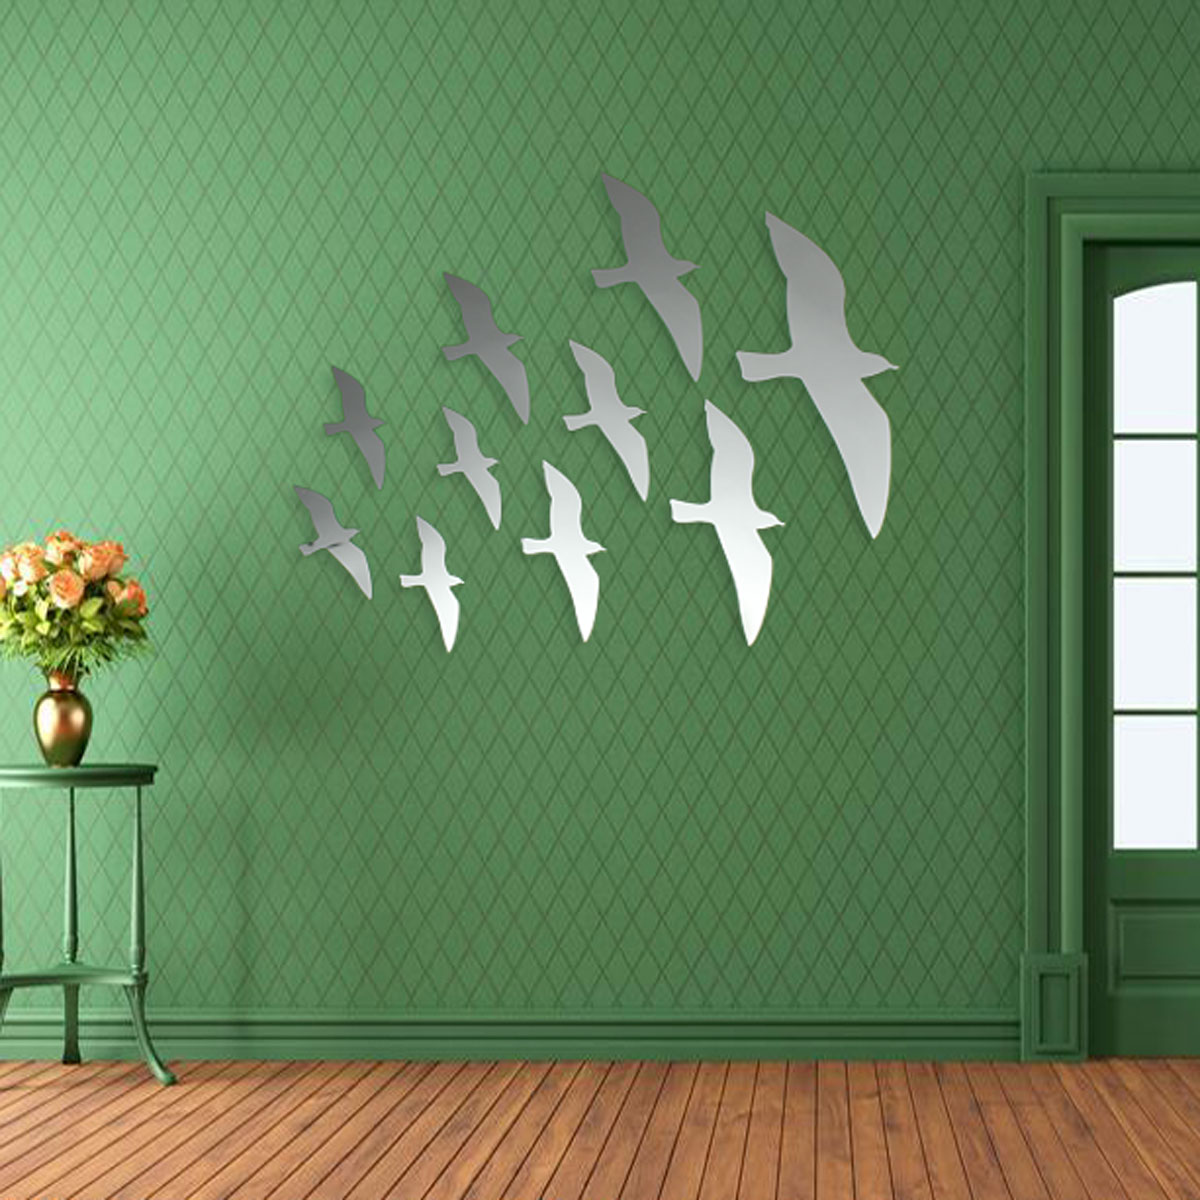 10pcs seagull flying birds diy mirror wall sticker home acrylic decal art decor ebay. Black Bedroom Furniture Sets. Home Design Ideas